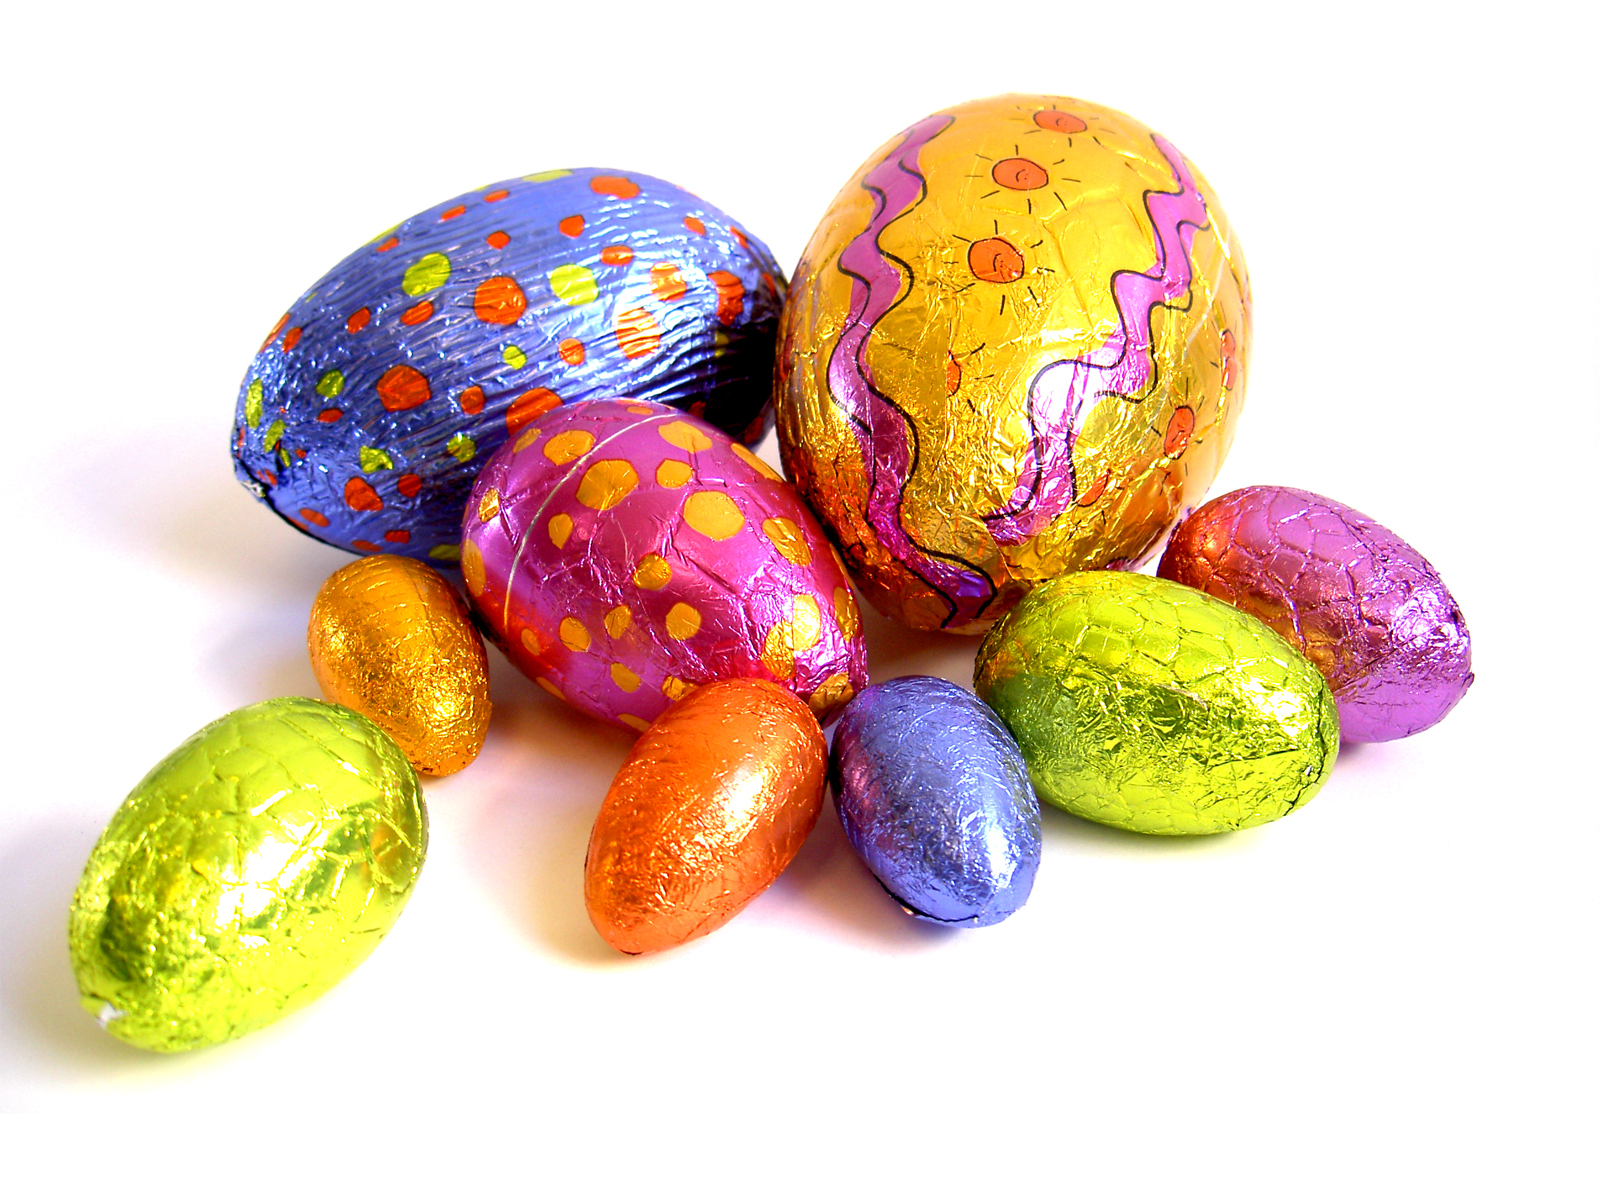 File:Easter-Eggs.jpg - Wikipedia